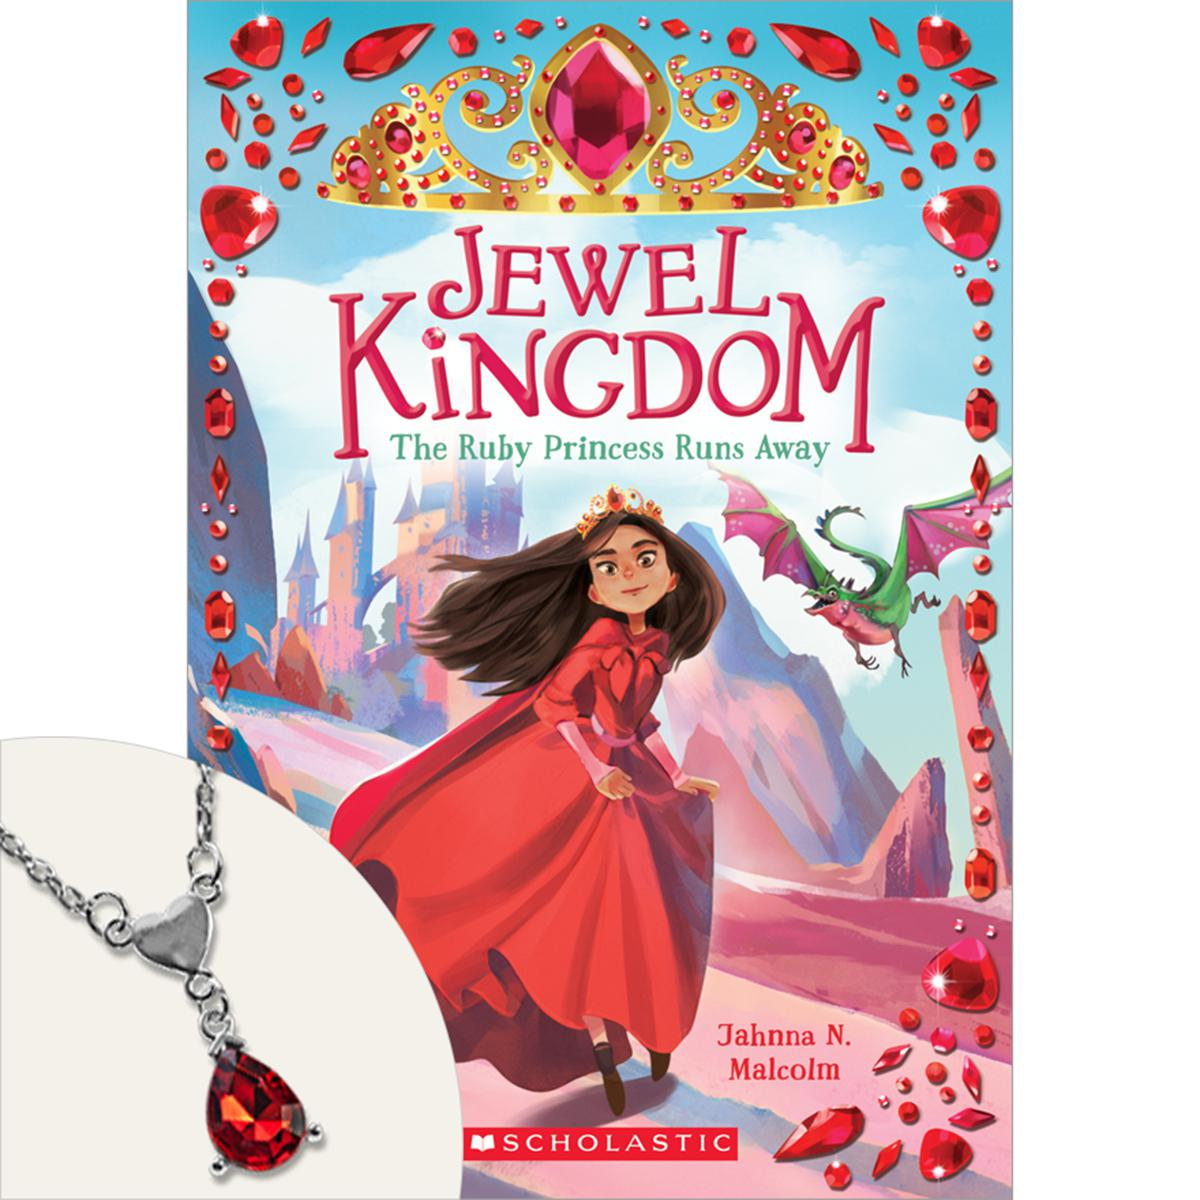 Jewel Kingdom: The Ruby Princess Runs Away Pack